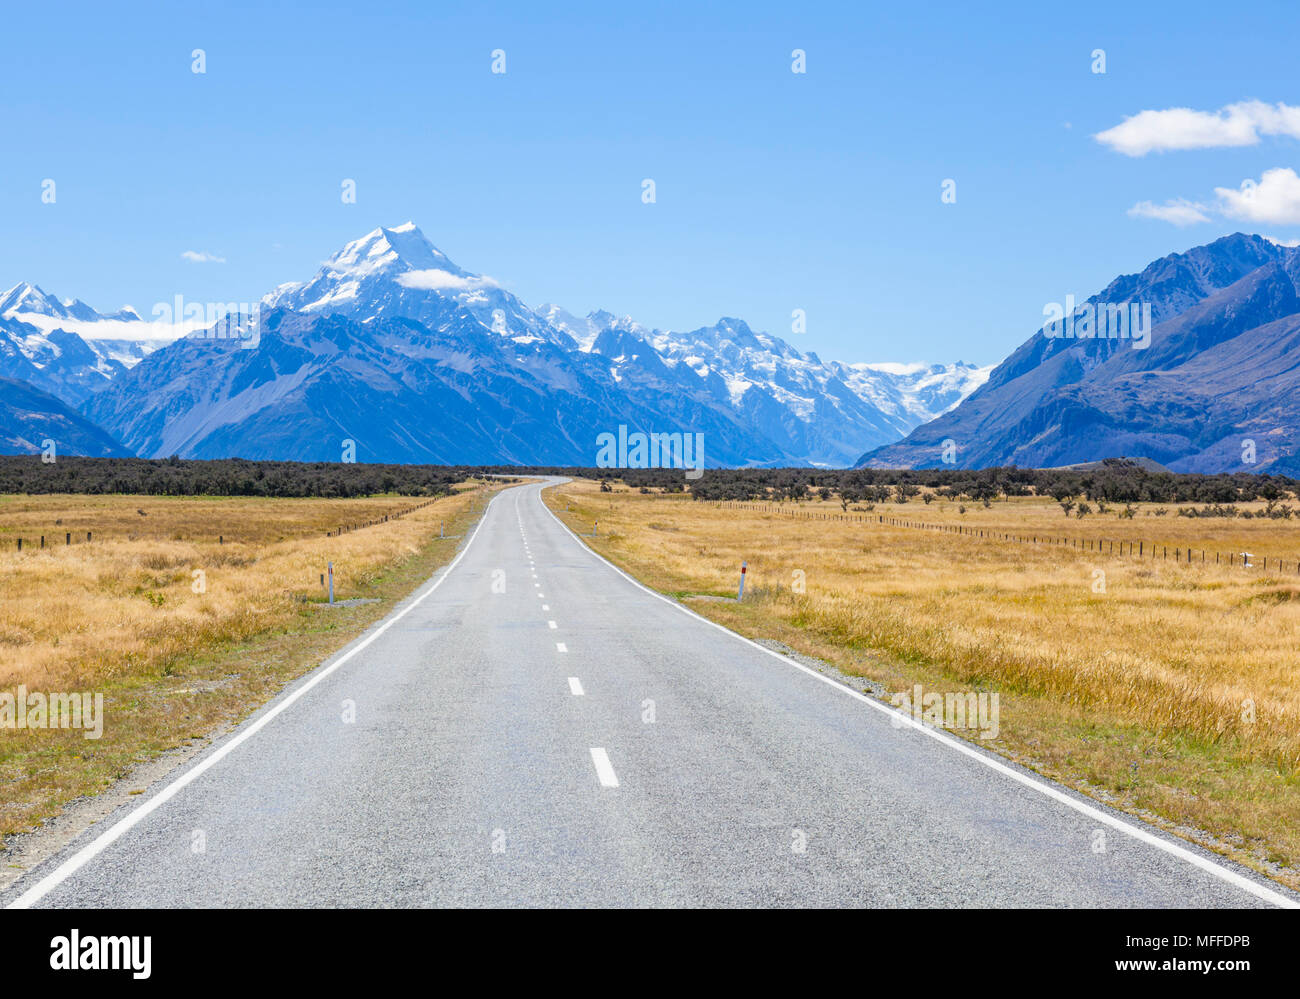 new zealand south island new zealand a straight empty road with no traffic in mount cook national park new zealand - Stock Image